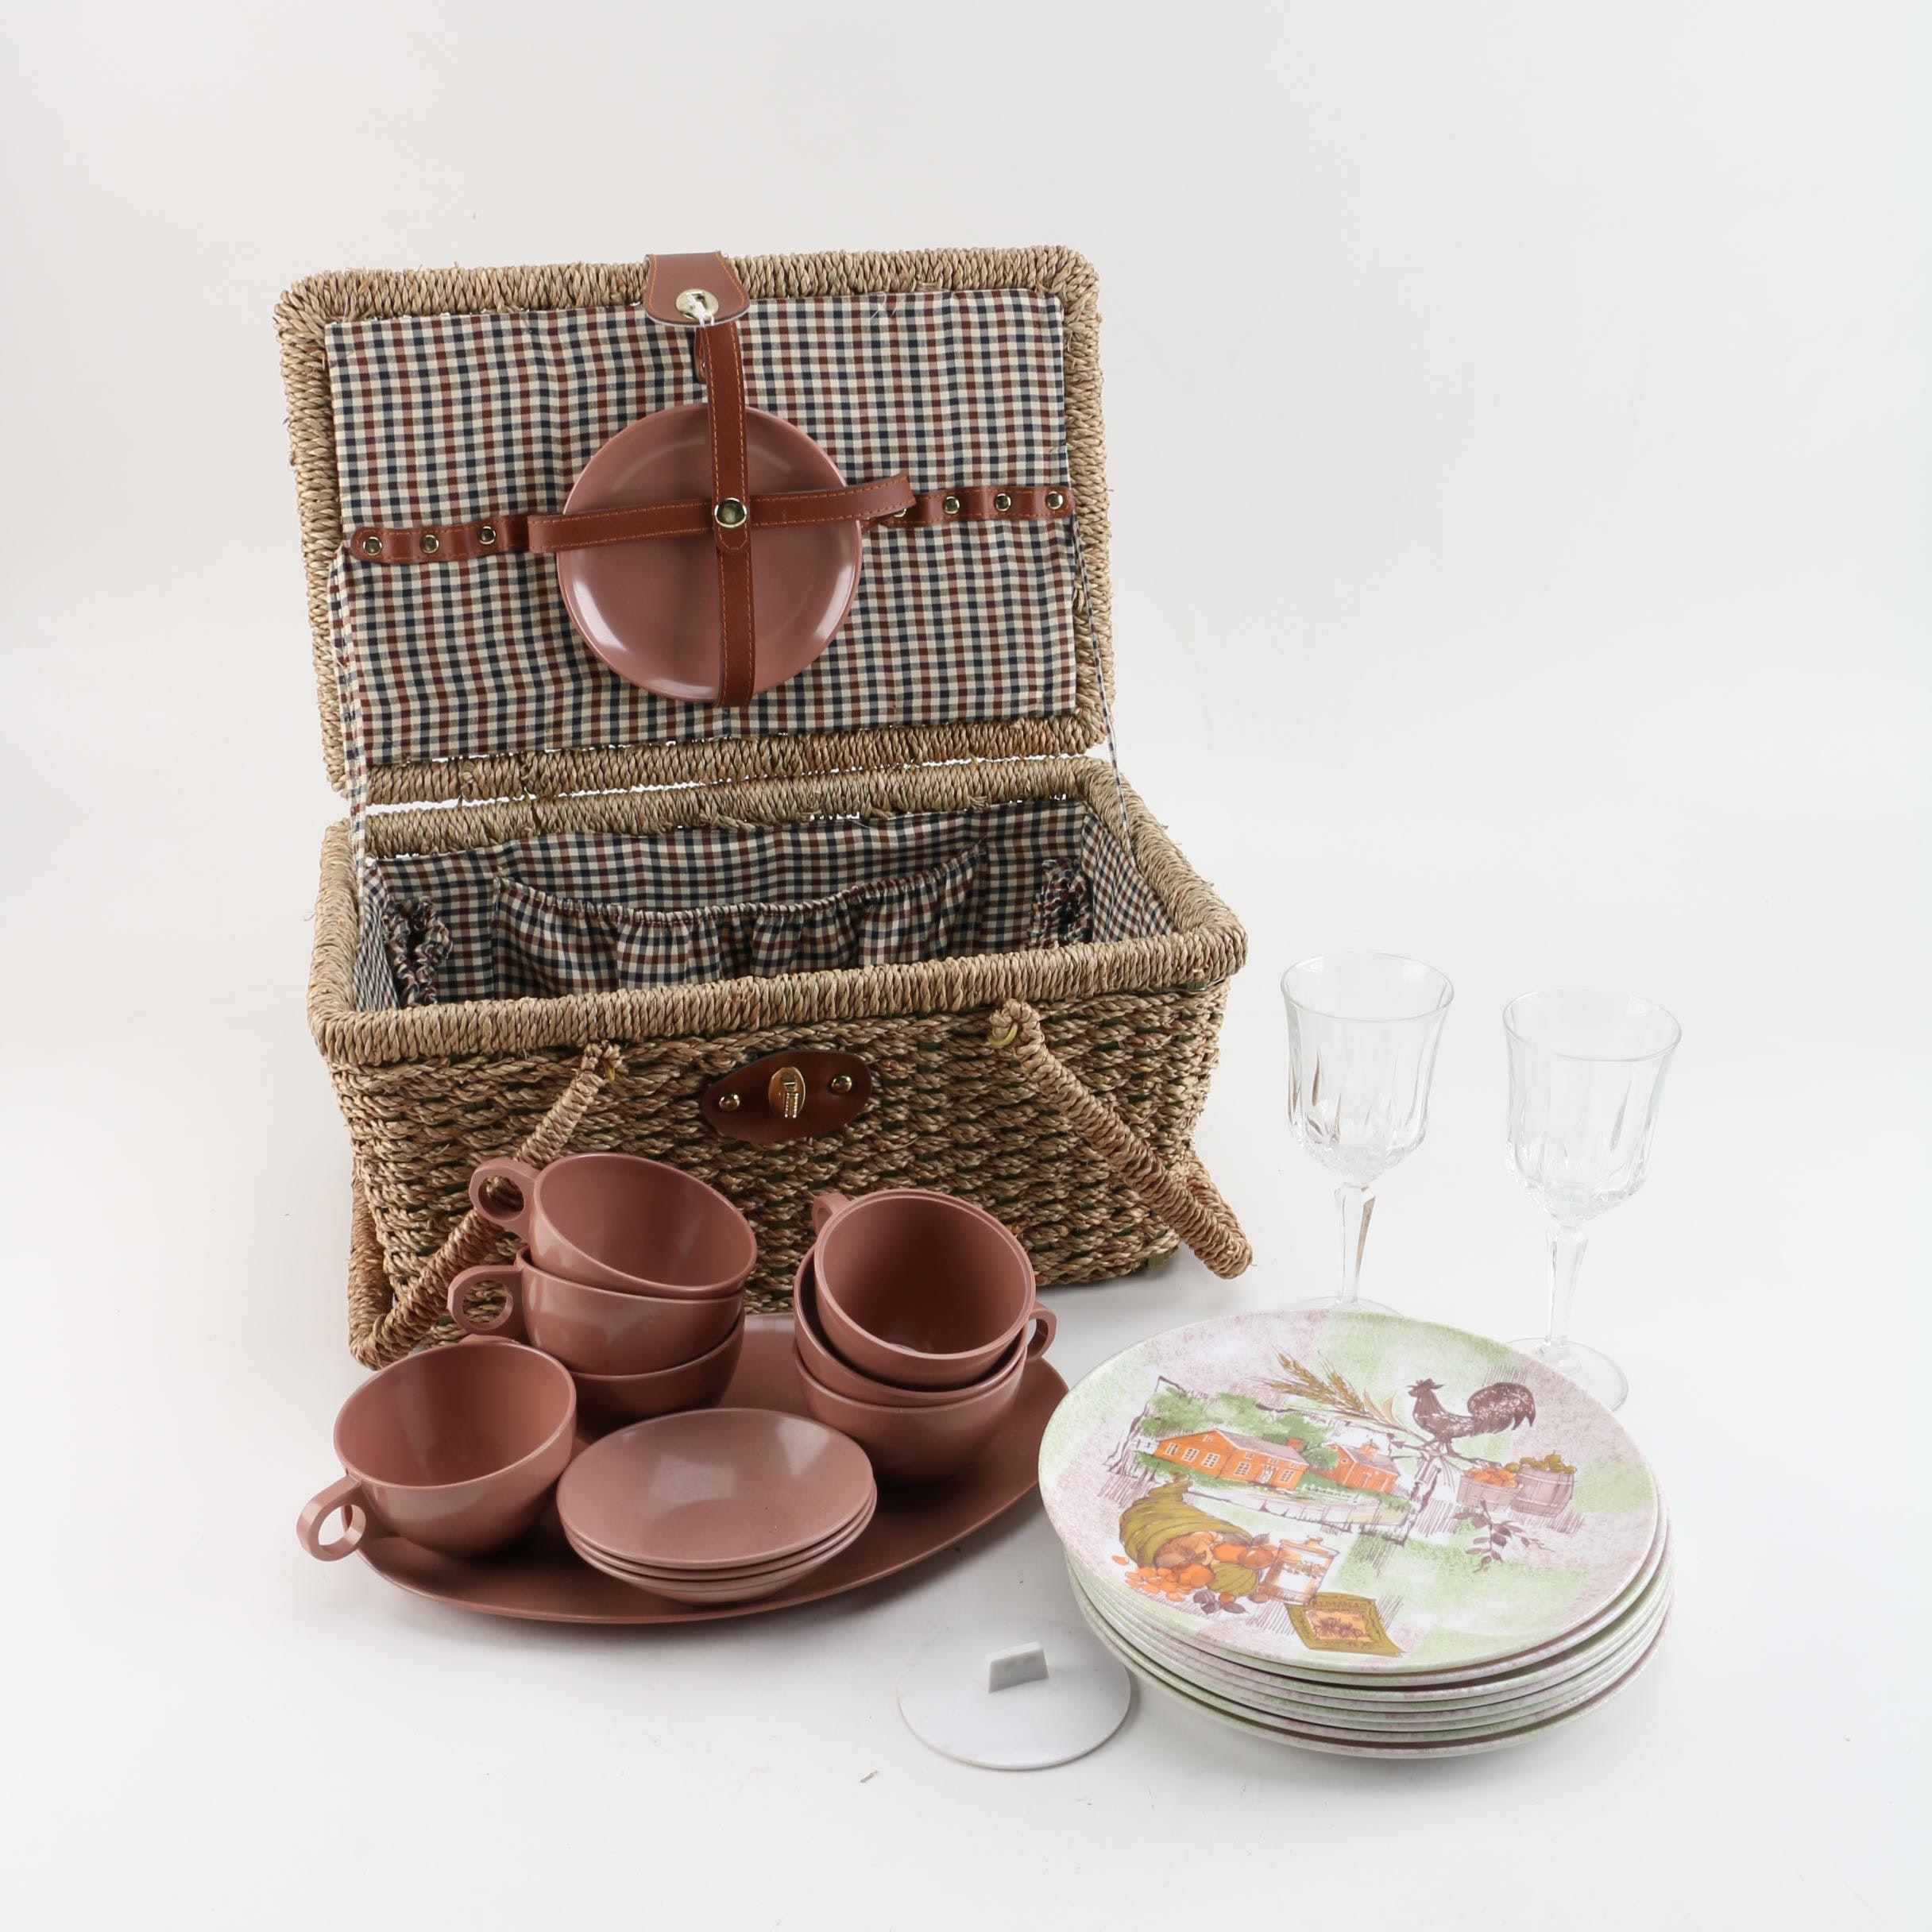 Picnic Basket with Wine Glasses and Dinnerware